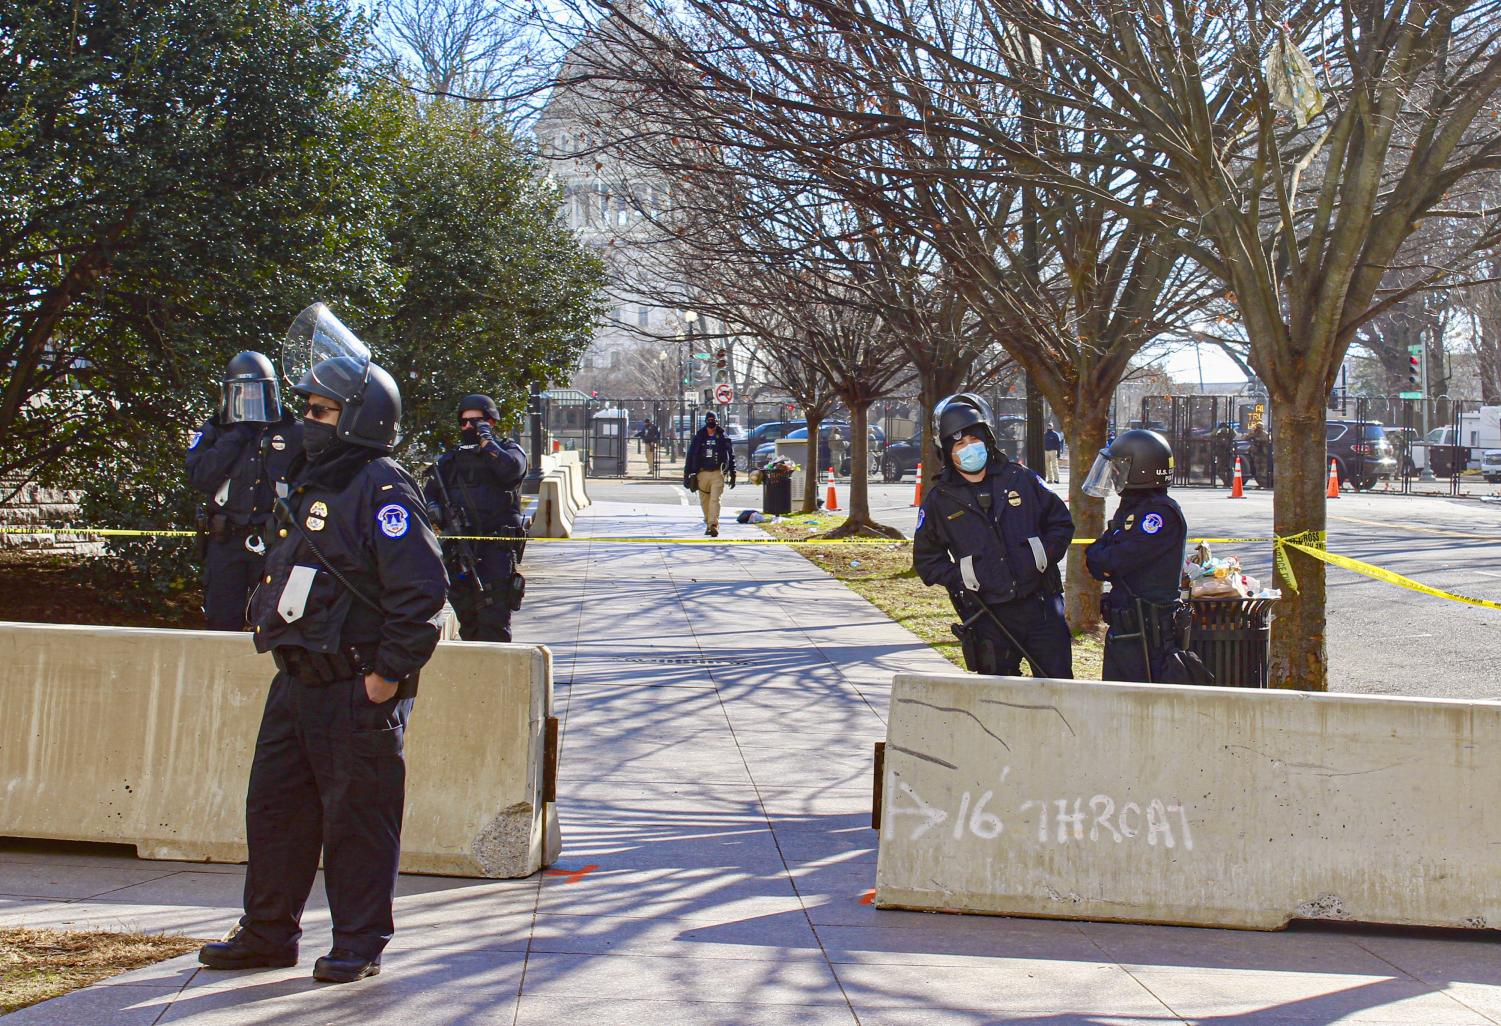 Security was heightened in and around the capitol in anticipation of protests during Joe Biden's inauguration on Jan. 20, in Washington D.C.